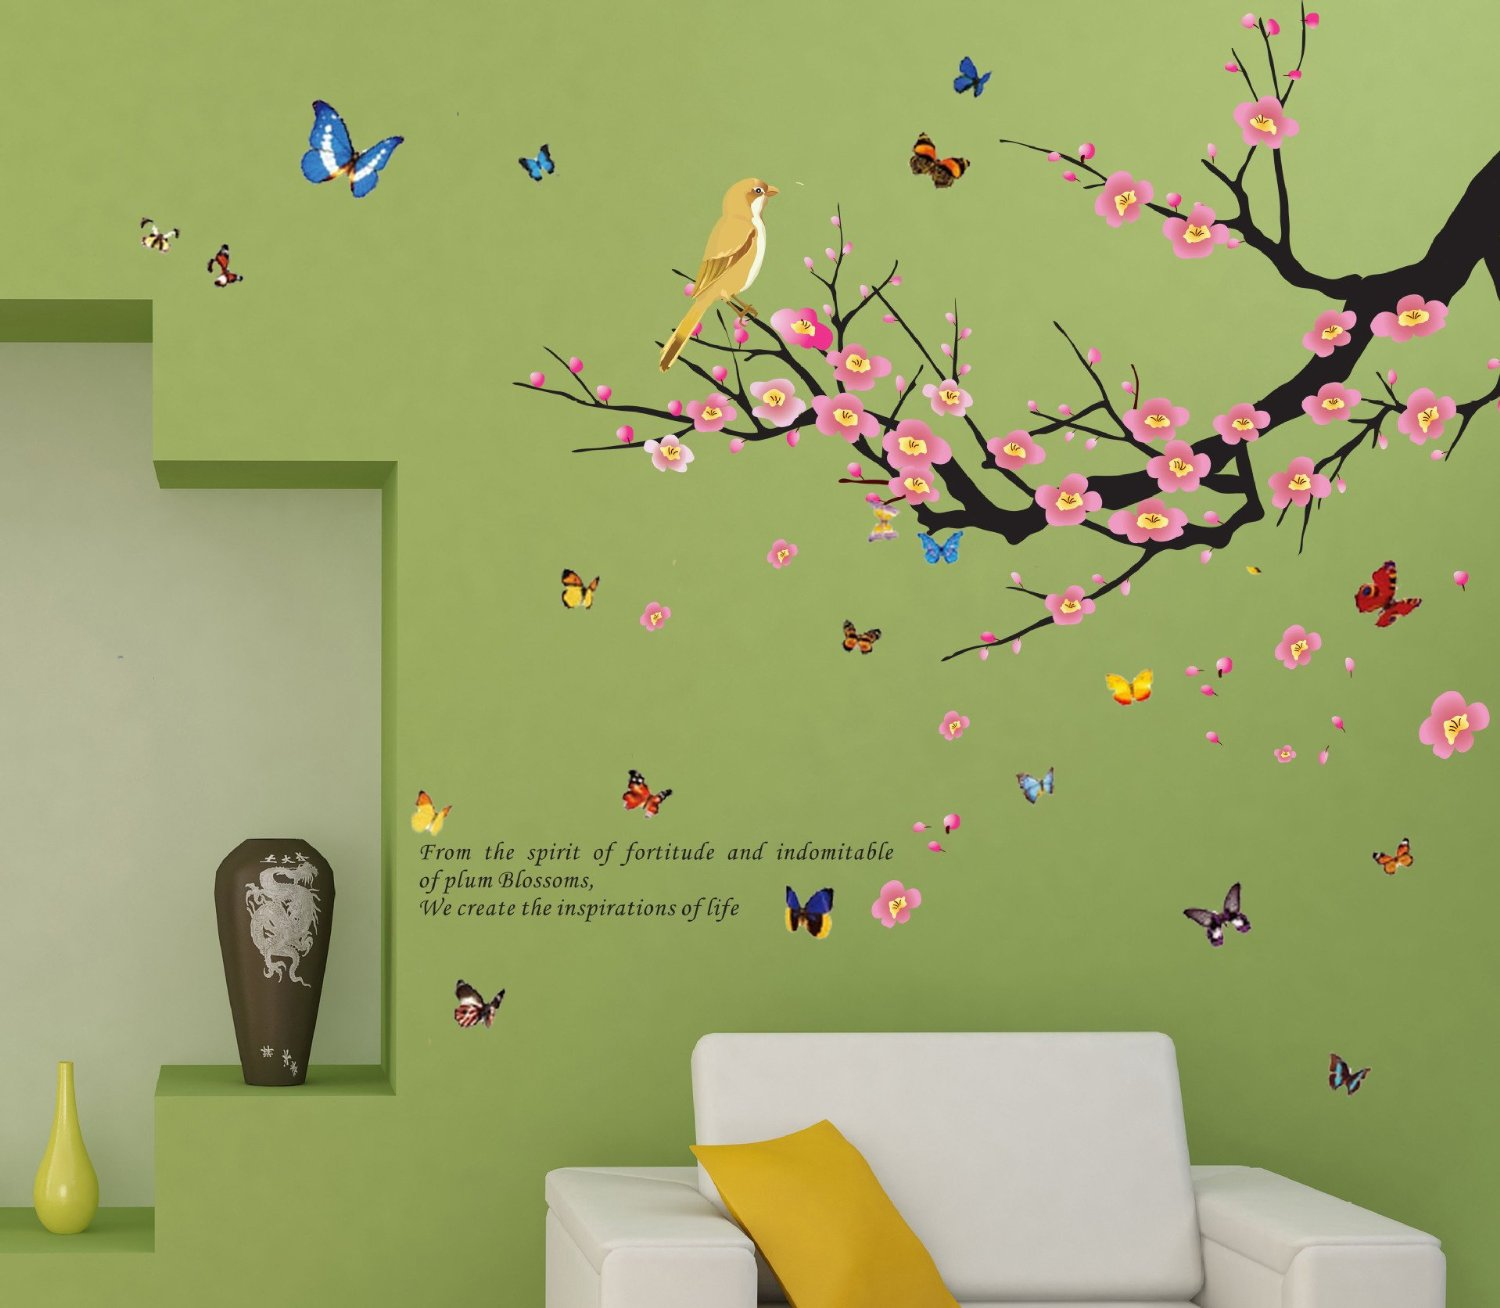 DaGou, Butterflies & Trees & birds, Home Decor large Wall Stickers & Murals, Wall Decals, Wallpaper, and Removable Wall D¨¦cor Decorative Painting Supplies & Wall Treatments Stickers for Kids Living Room bedroom wallpops decal